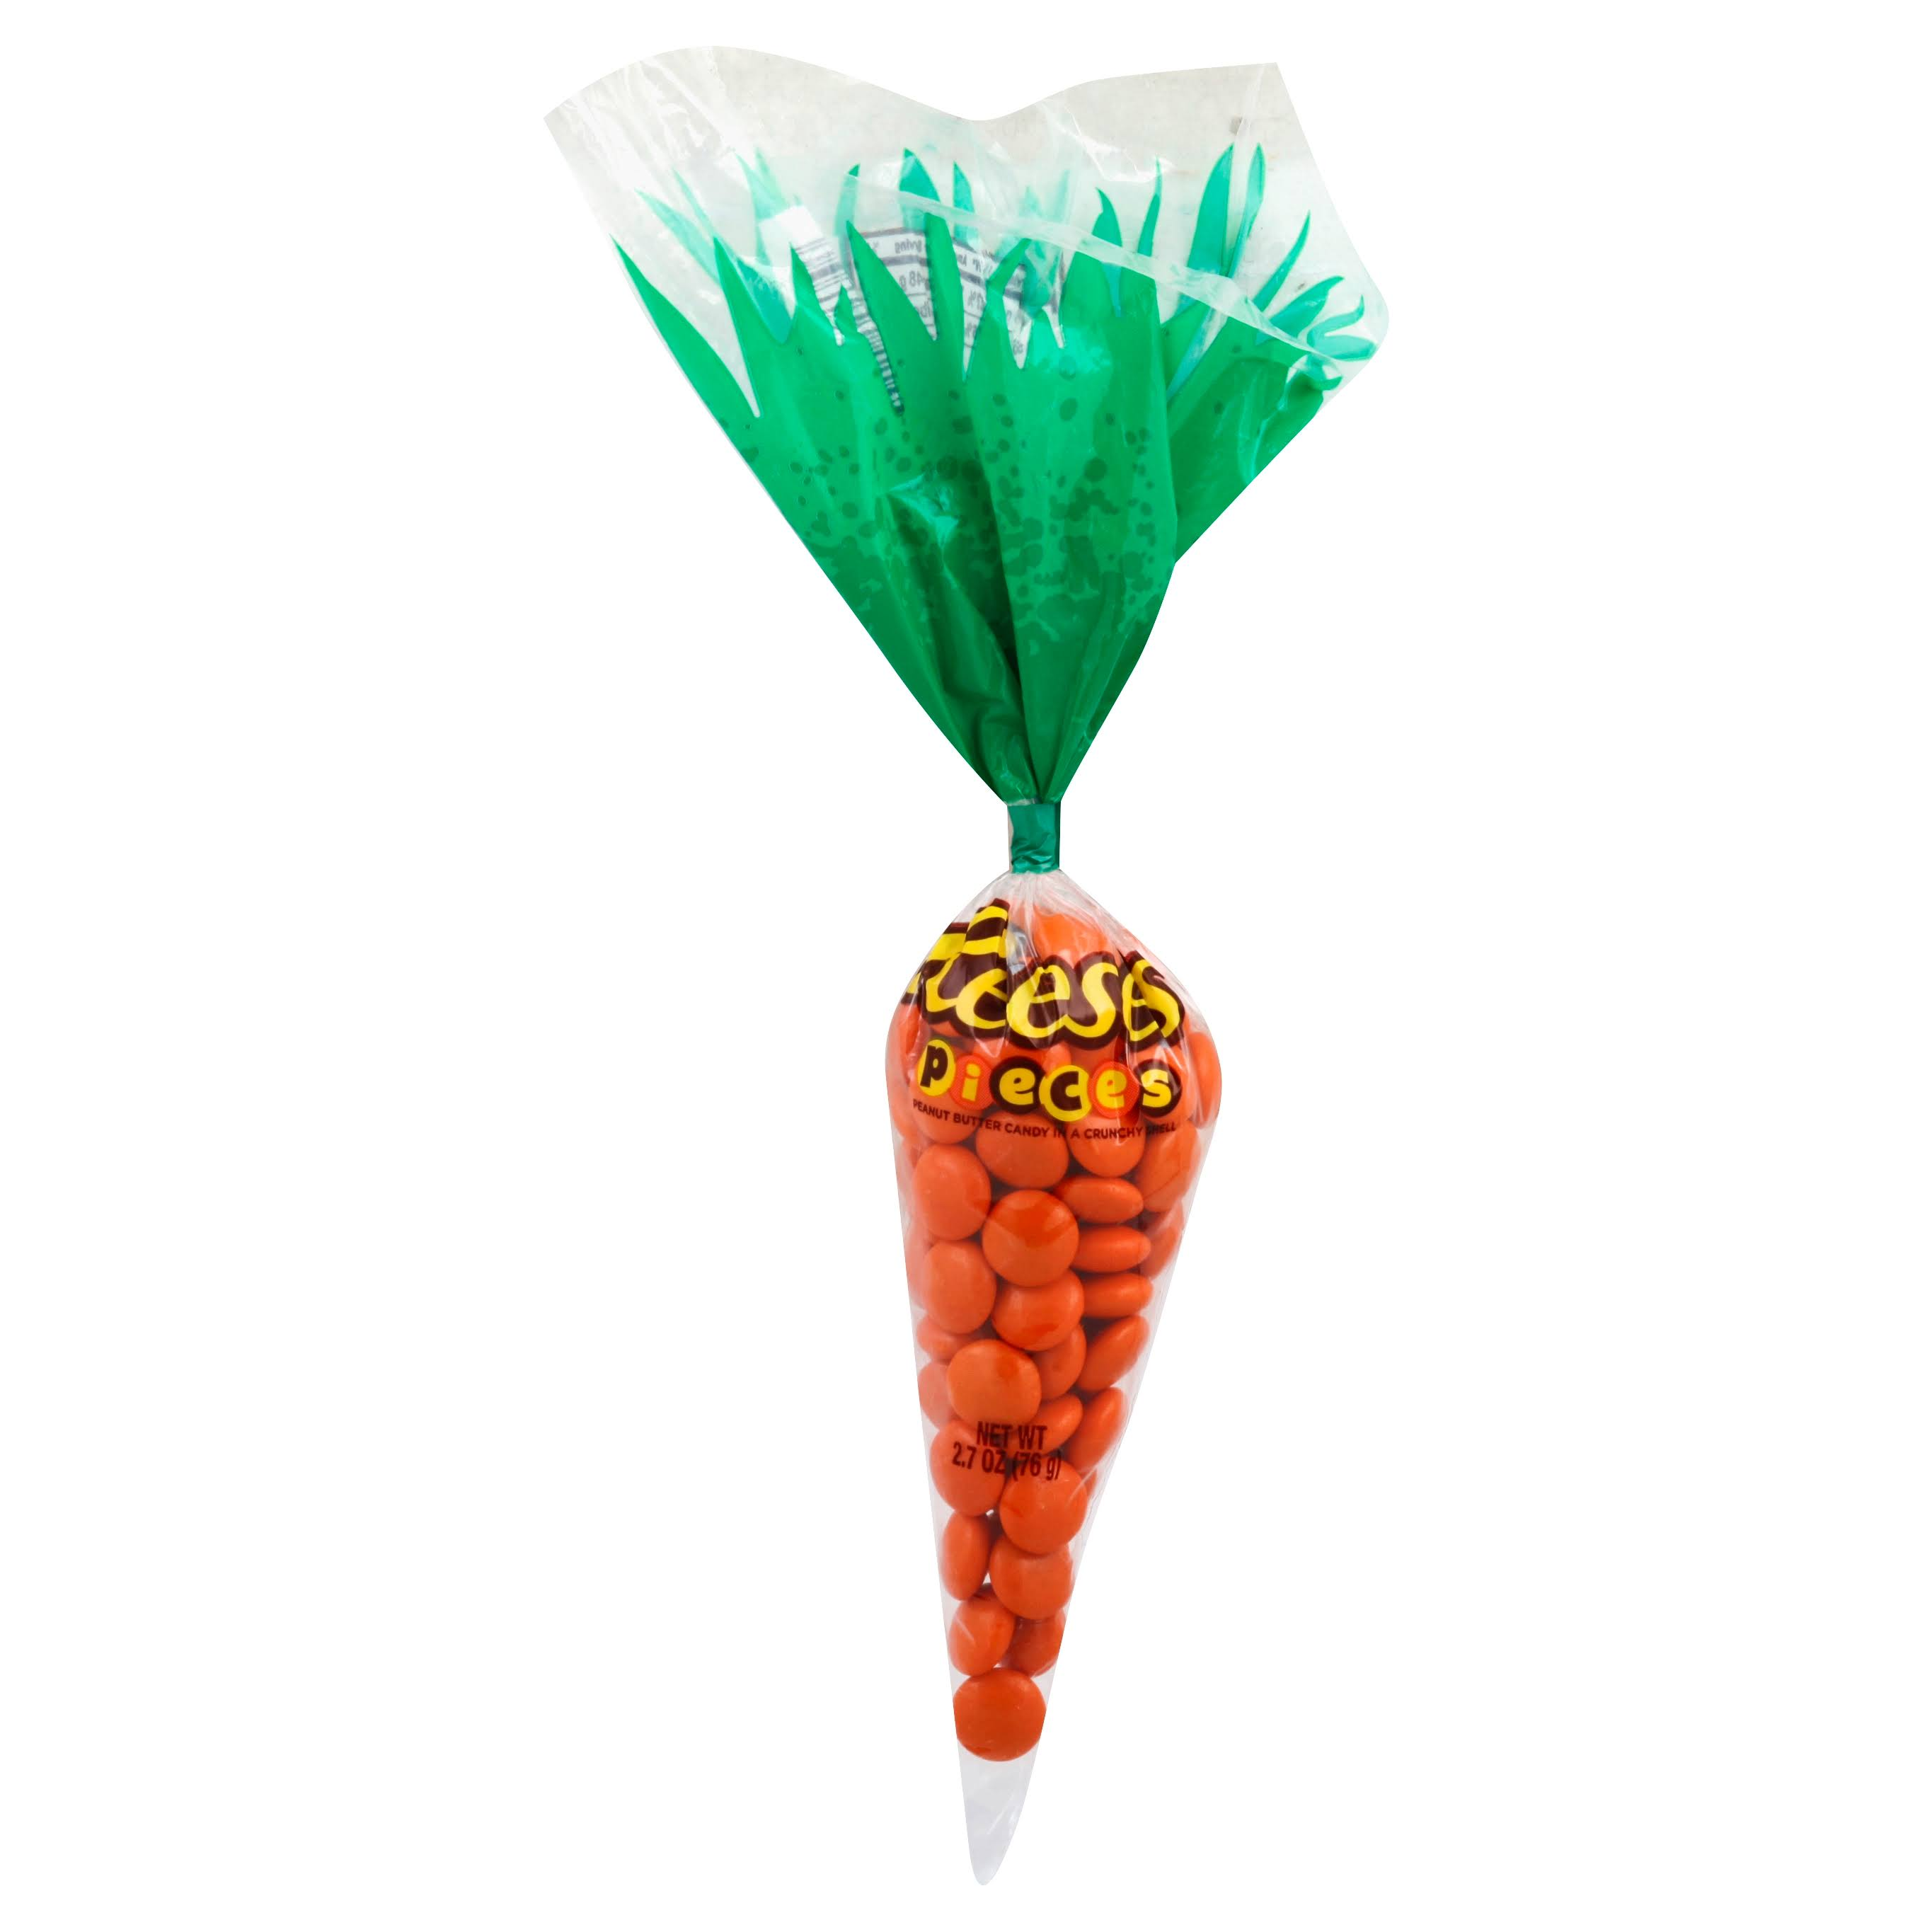 Reese's Pieces Easter Carrot - 2.7oz